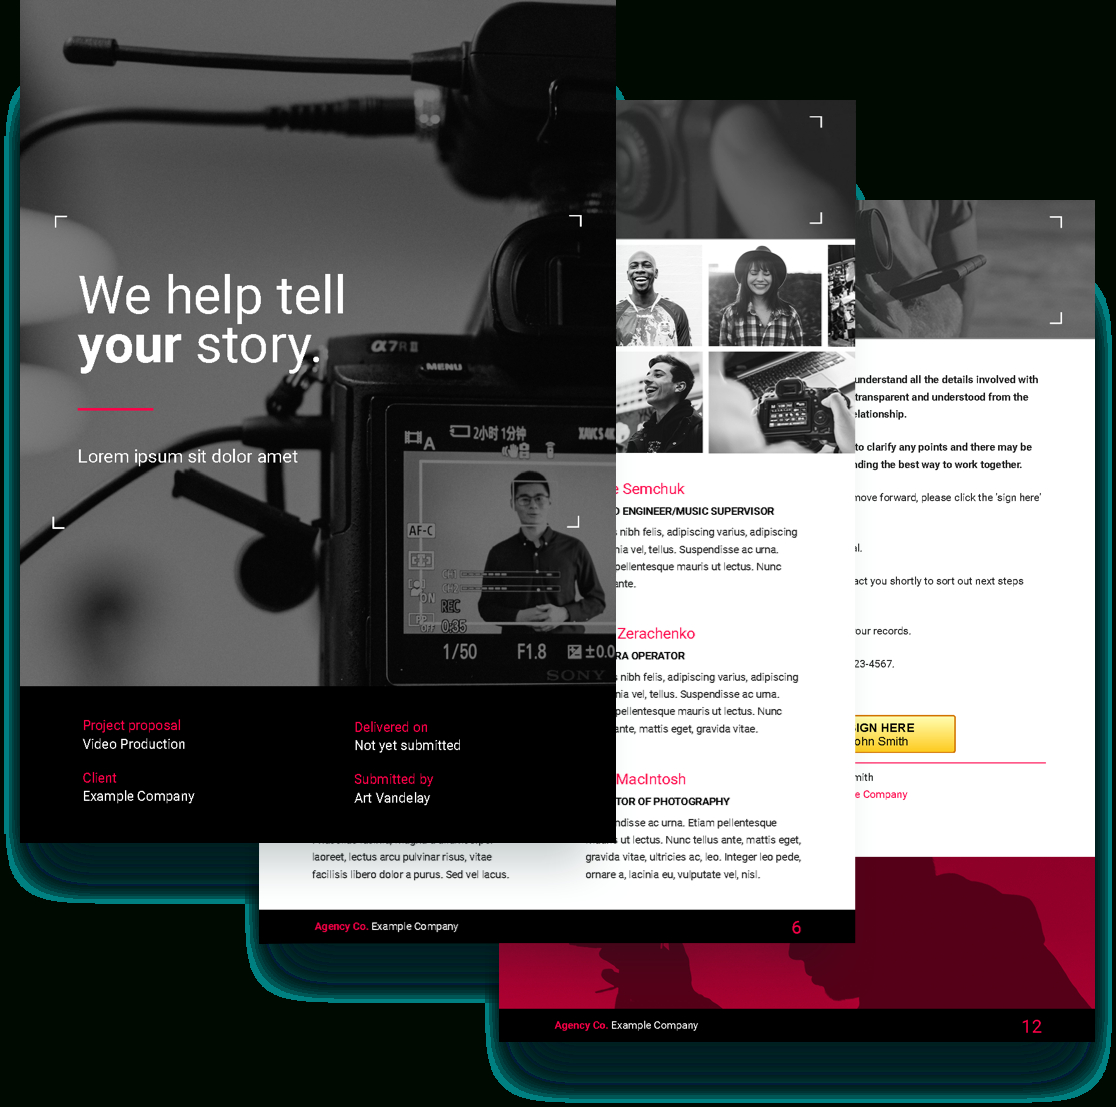 Video Proposal Template  Free Sample  Proposify Regarding Video Production Proposal Template